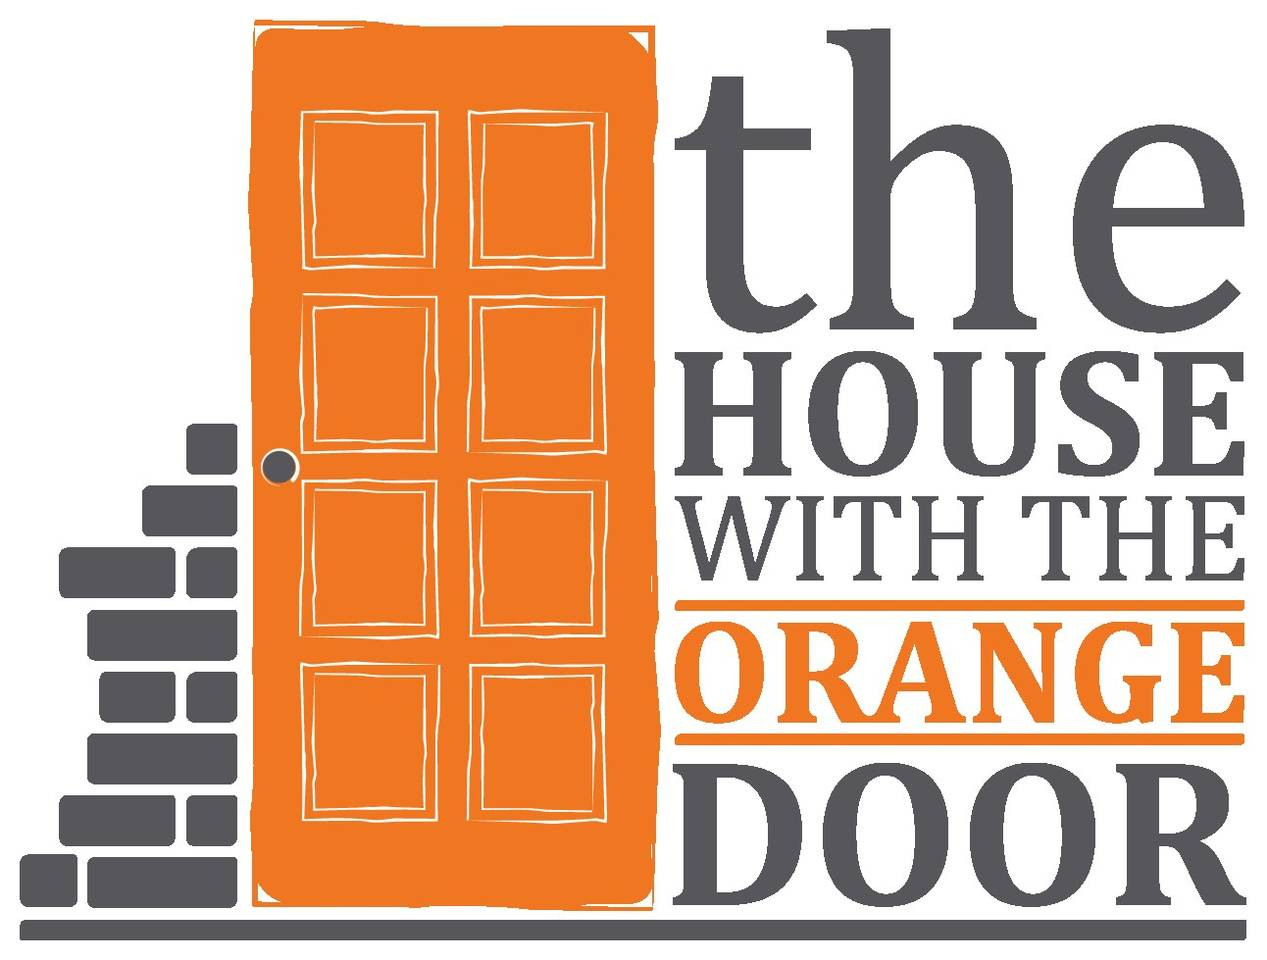 Door clipart orange #8